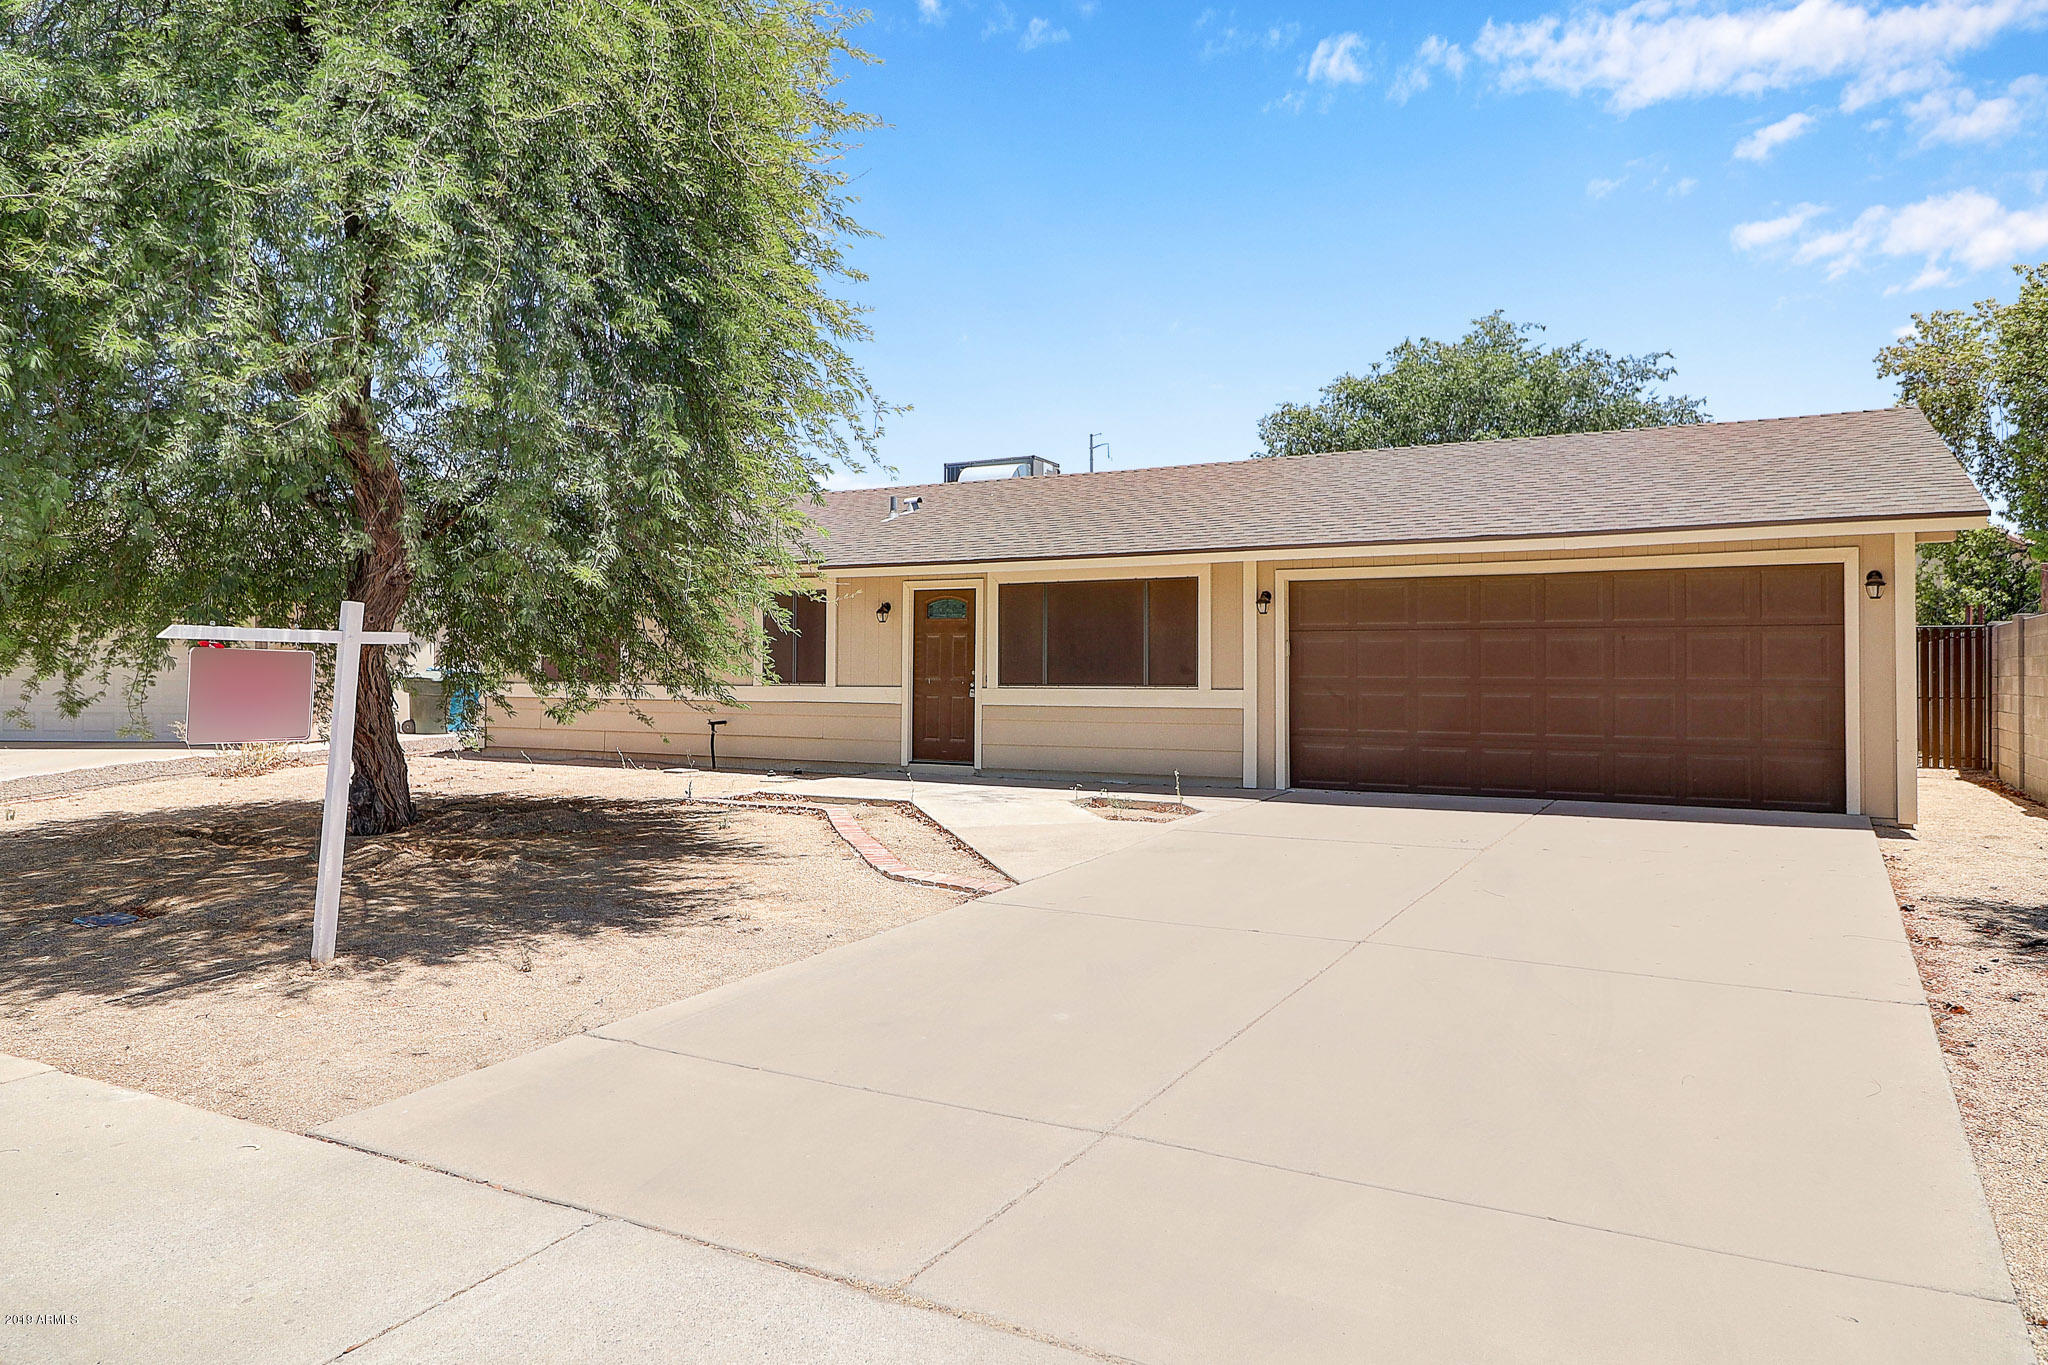 19220 N 29th Place, Phoenix AZ 85050 - House for Sale in